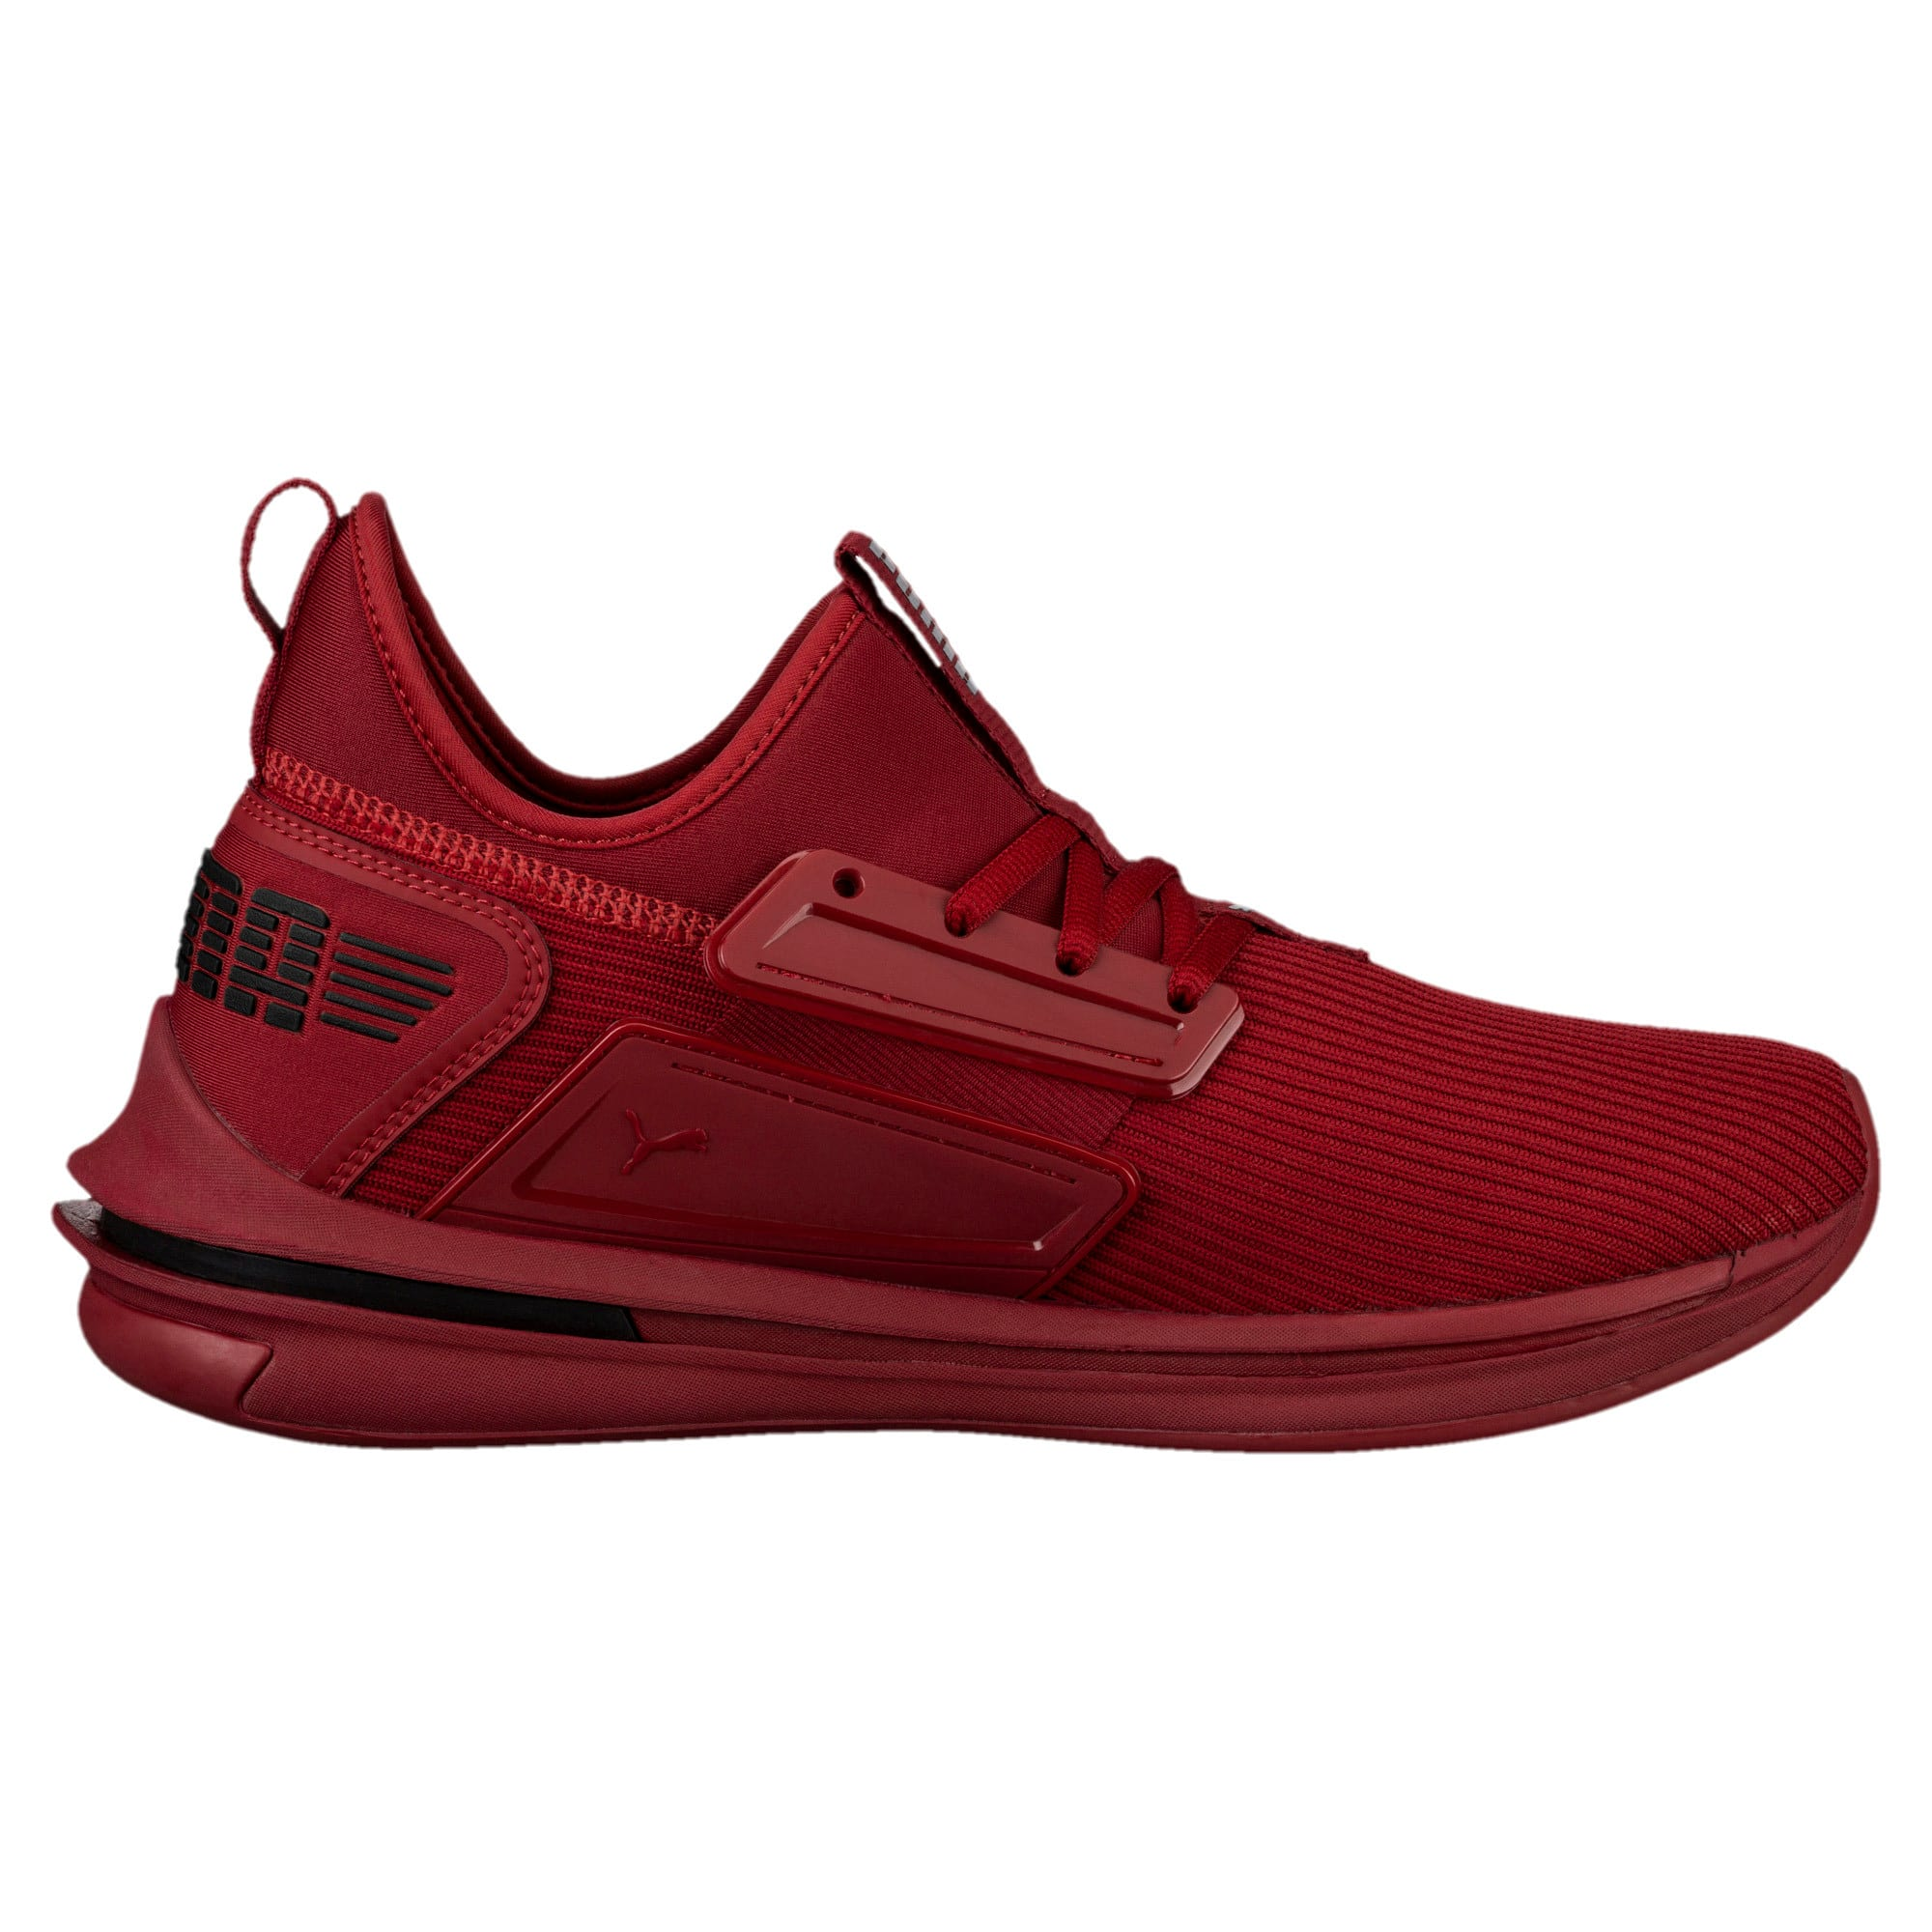 Thumbnail 4 of IGNITE Limitless SR Men's Running Shoes, Red Dahlia, medium-IND